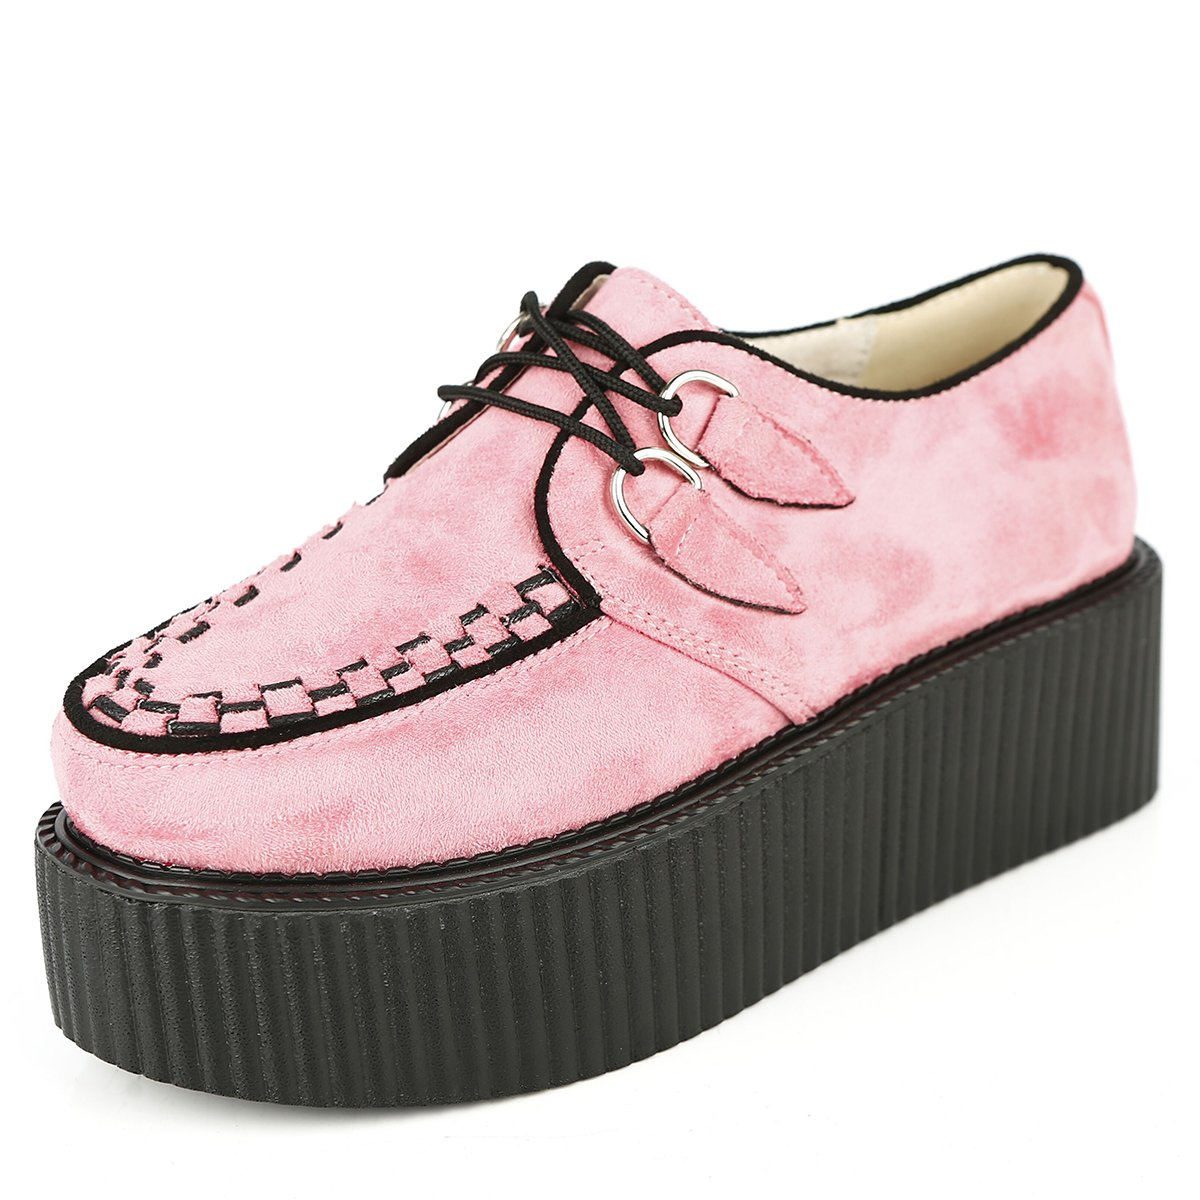 RoseG Lacets Femmes Lacets Plate Plate Forme Gothique Punk B06XH2WWPY Creepers Casual Chaussures Rose 366eb2f - piero.space